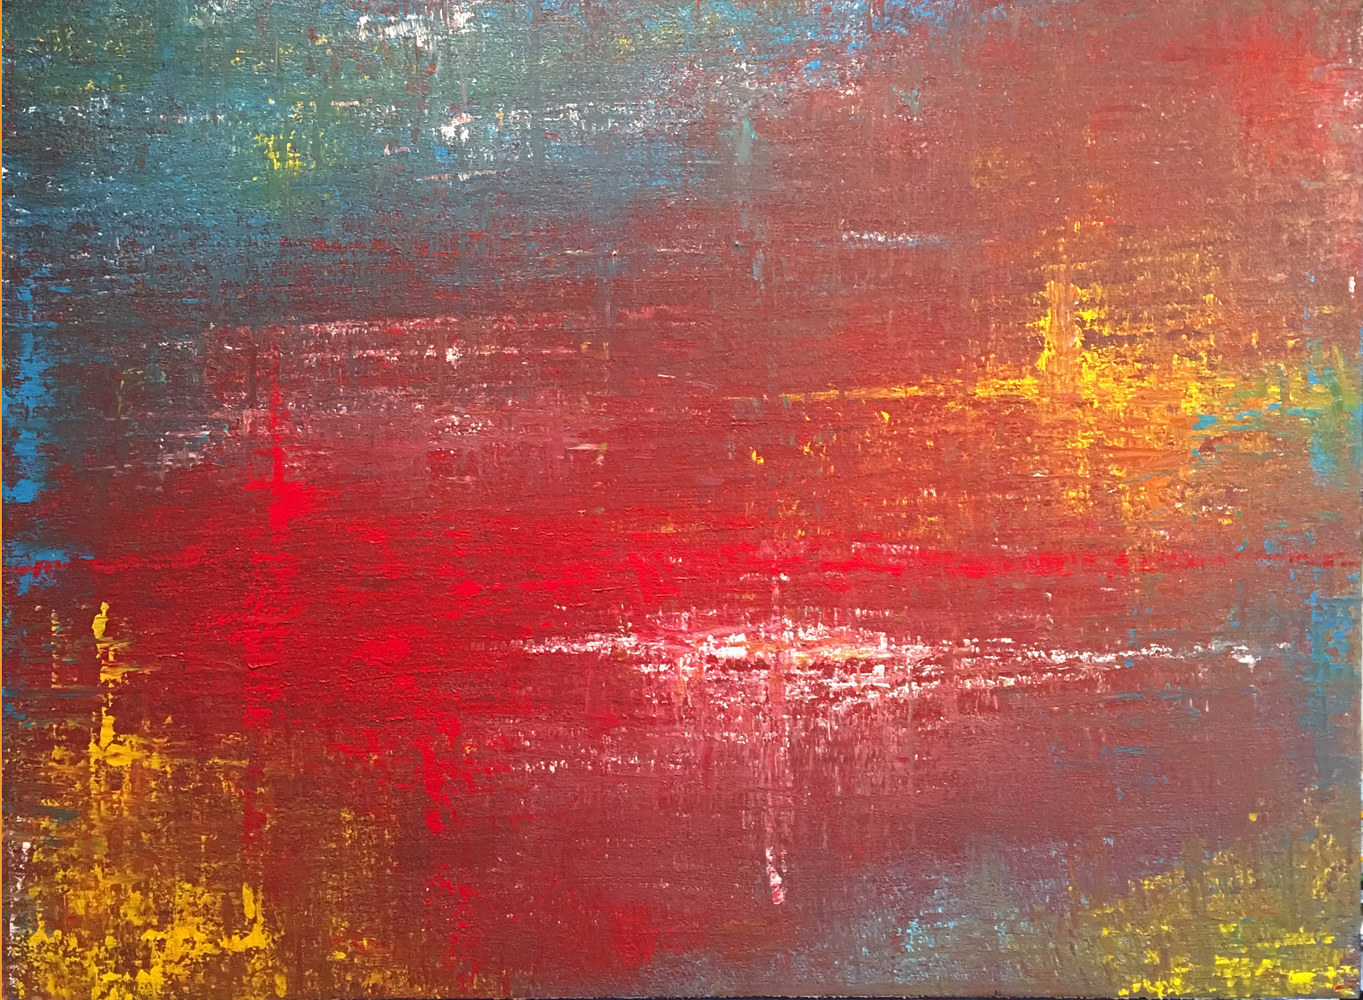 Acrylic painting All Things Reconciled - Colossians 1:20 by Richard Rice